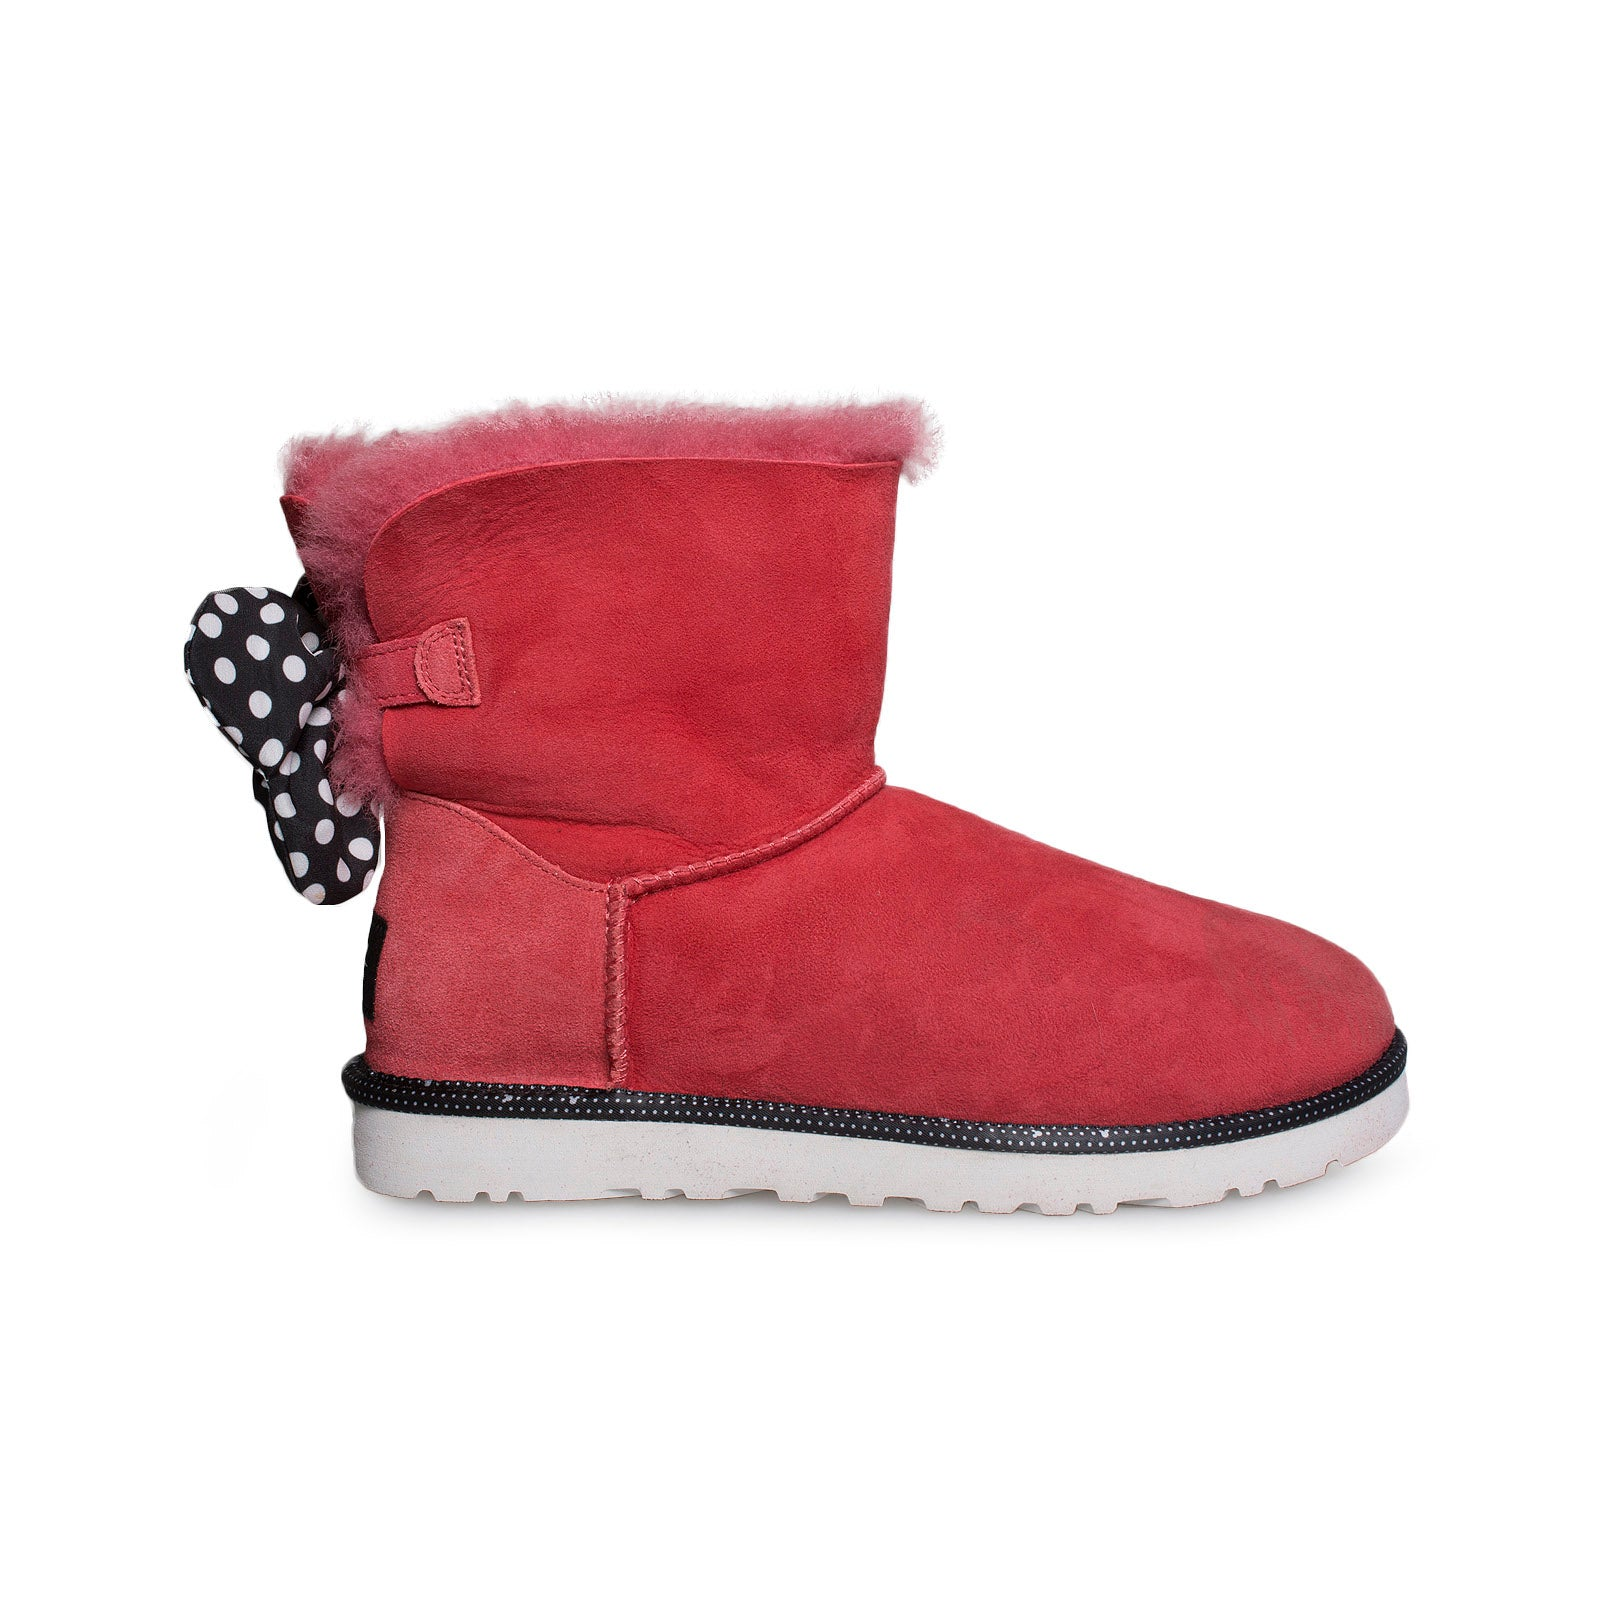 ugg sweetie bow nz